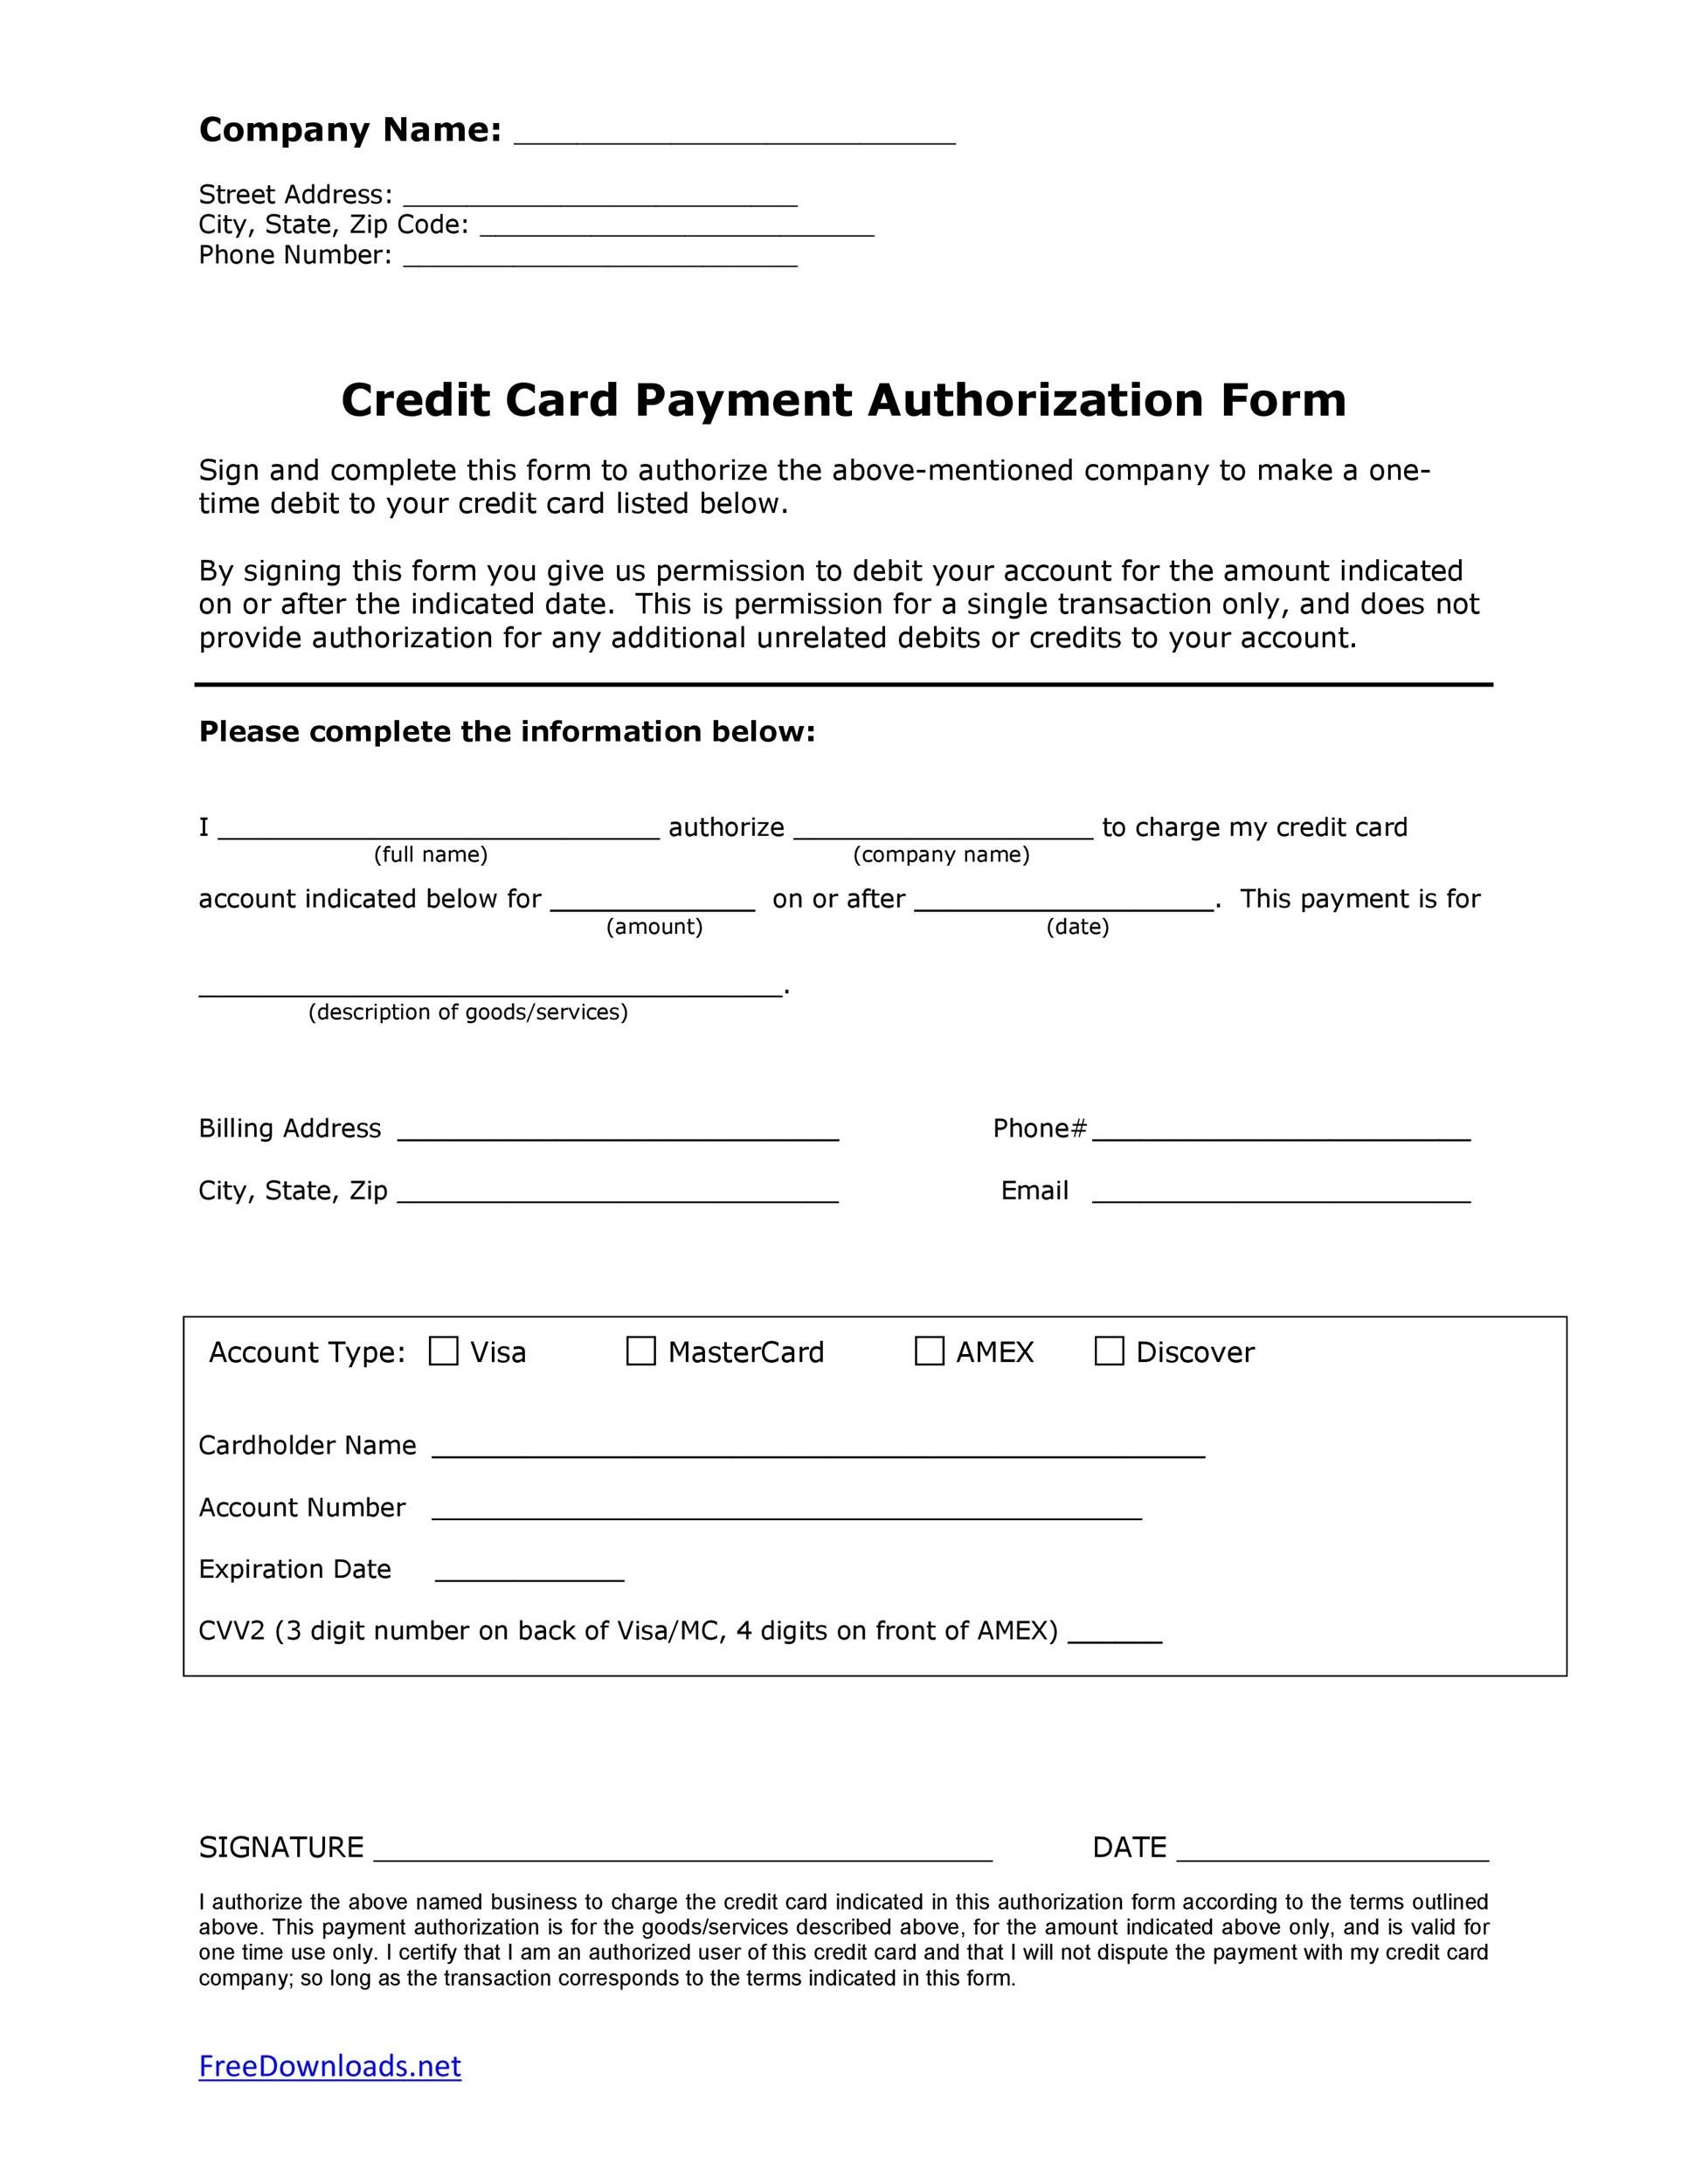 Free credit card authorization form template 19